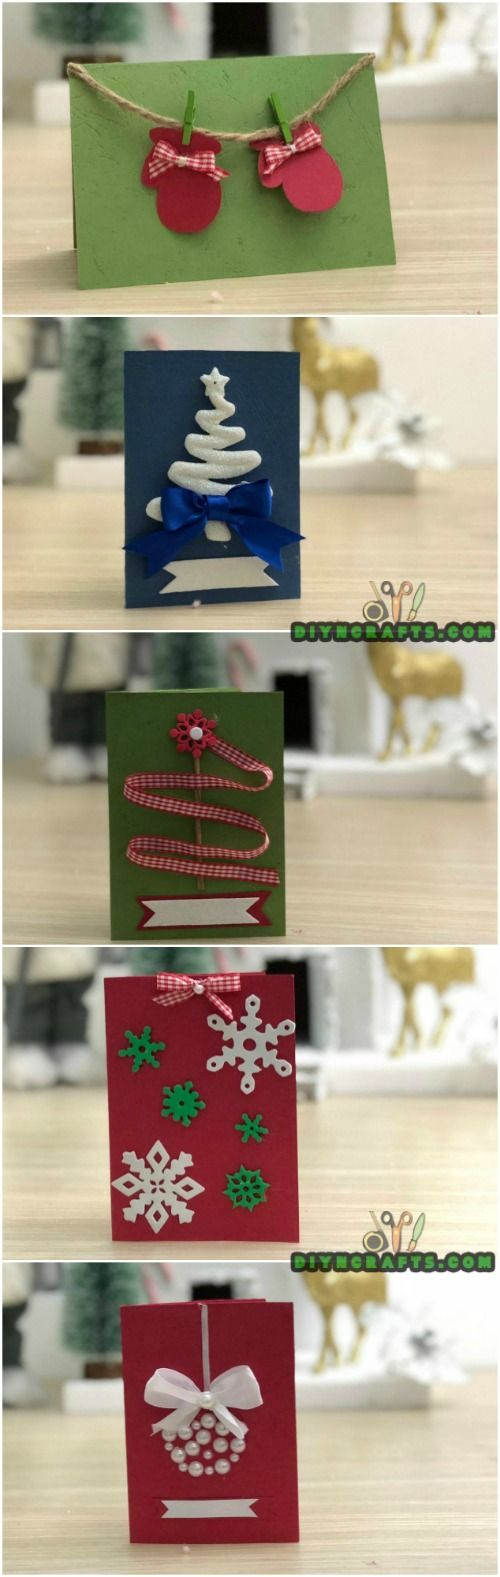 Send Your Season's Greetings In Style With These 5 DIY Christmas Cards #Christmascards #crafts #papercrafts #Christmascrafts via @vanessacrafting